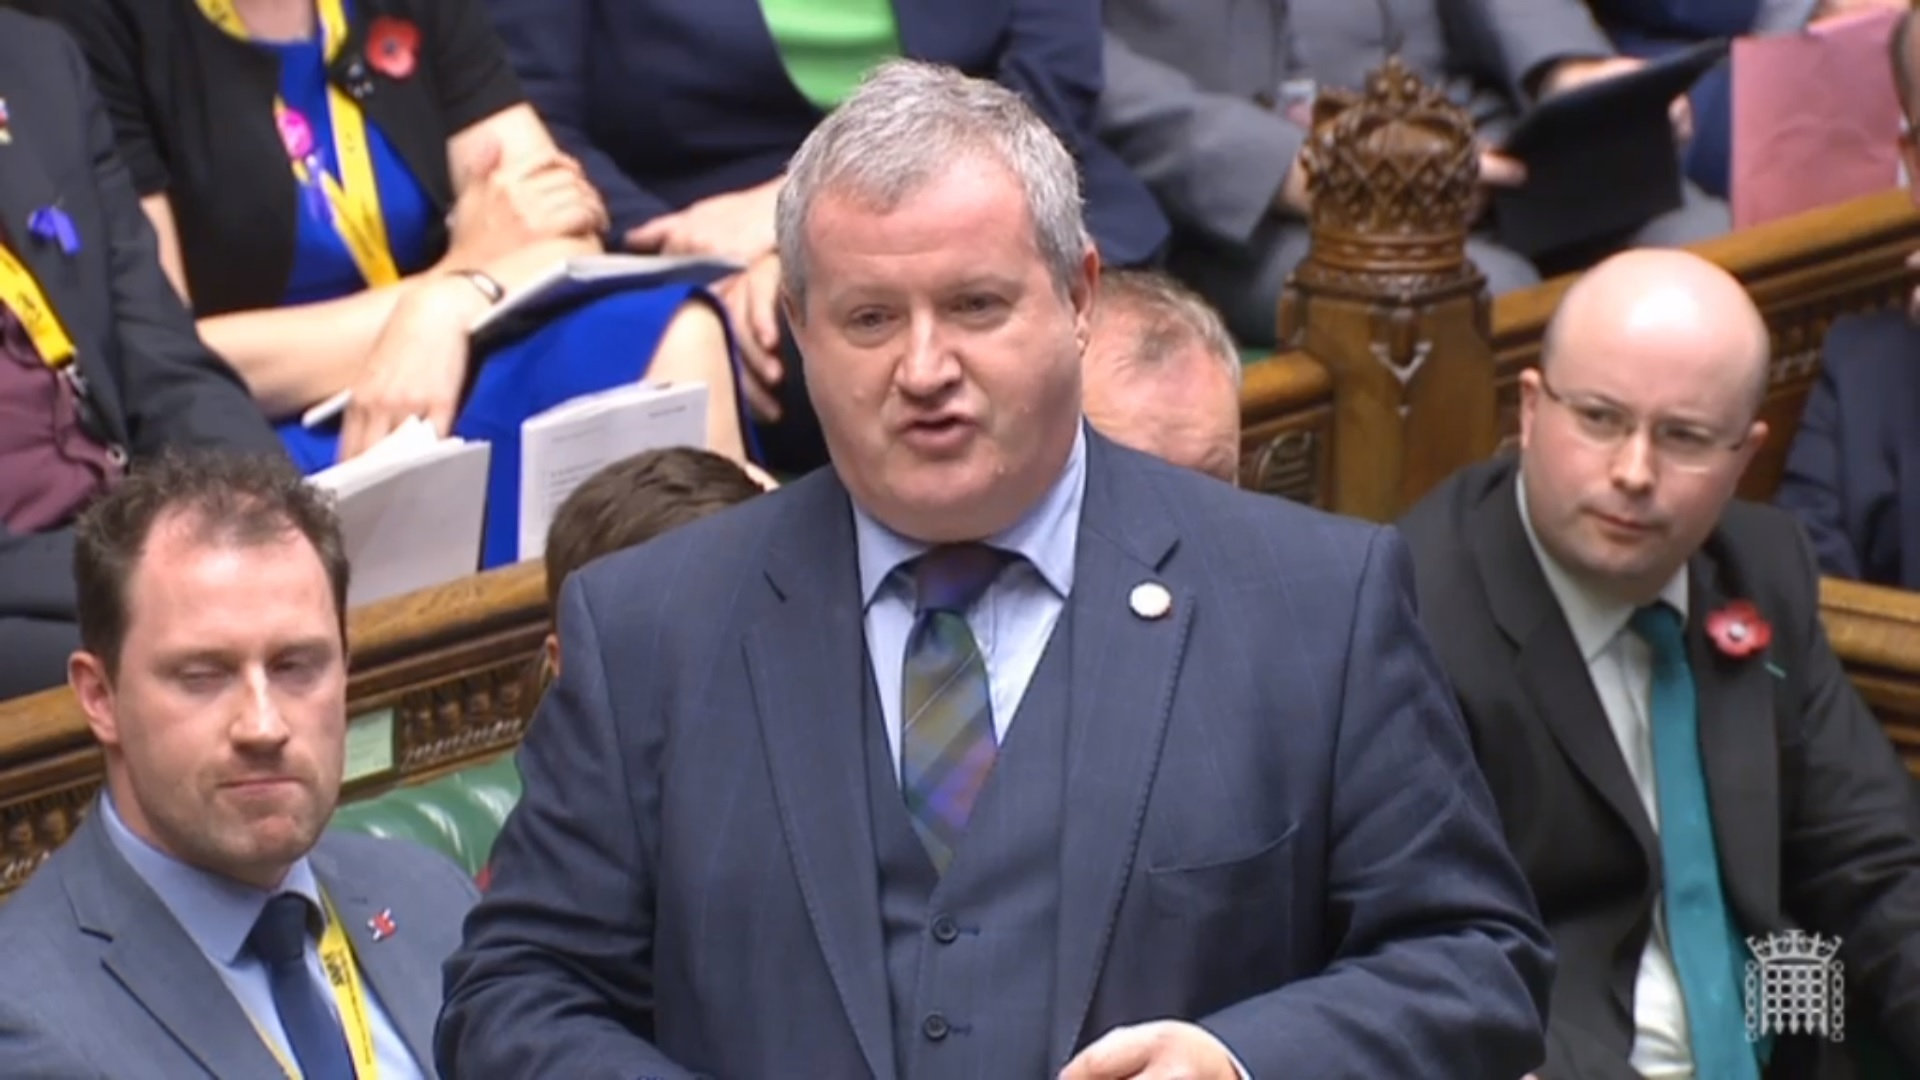 SNP Westminster leader Ian Blackford will head to Brussels later this month